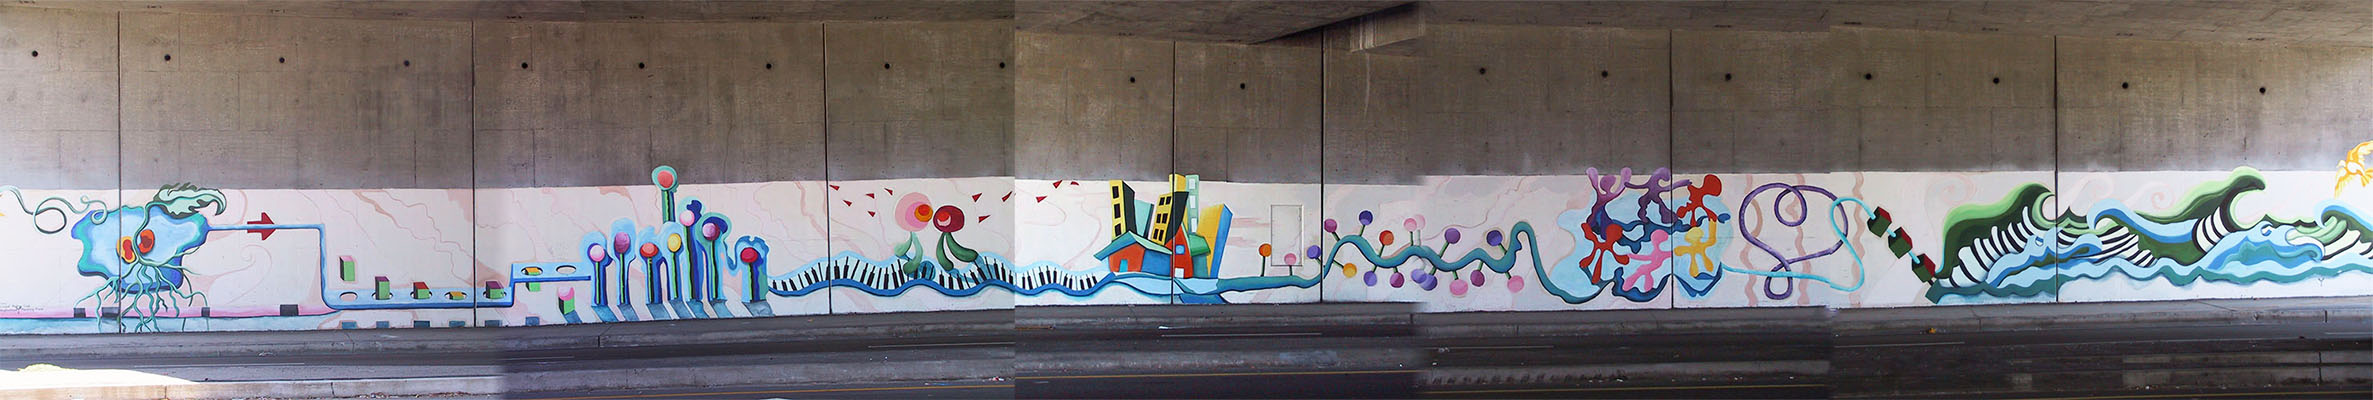 Journey of Life underpass mural completed